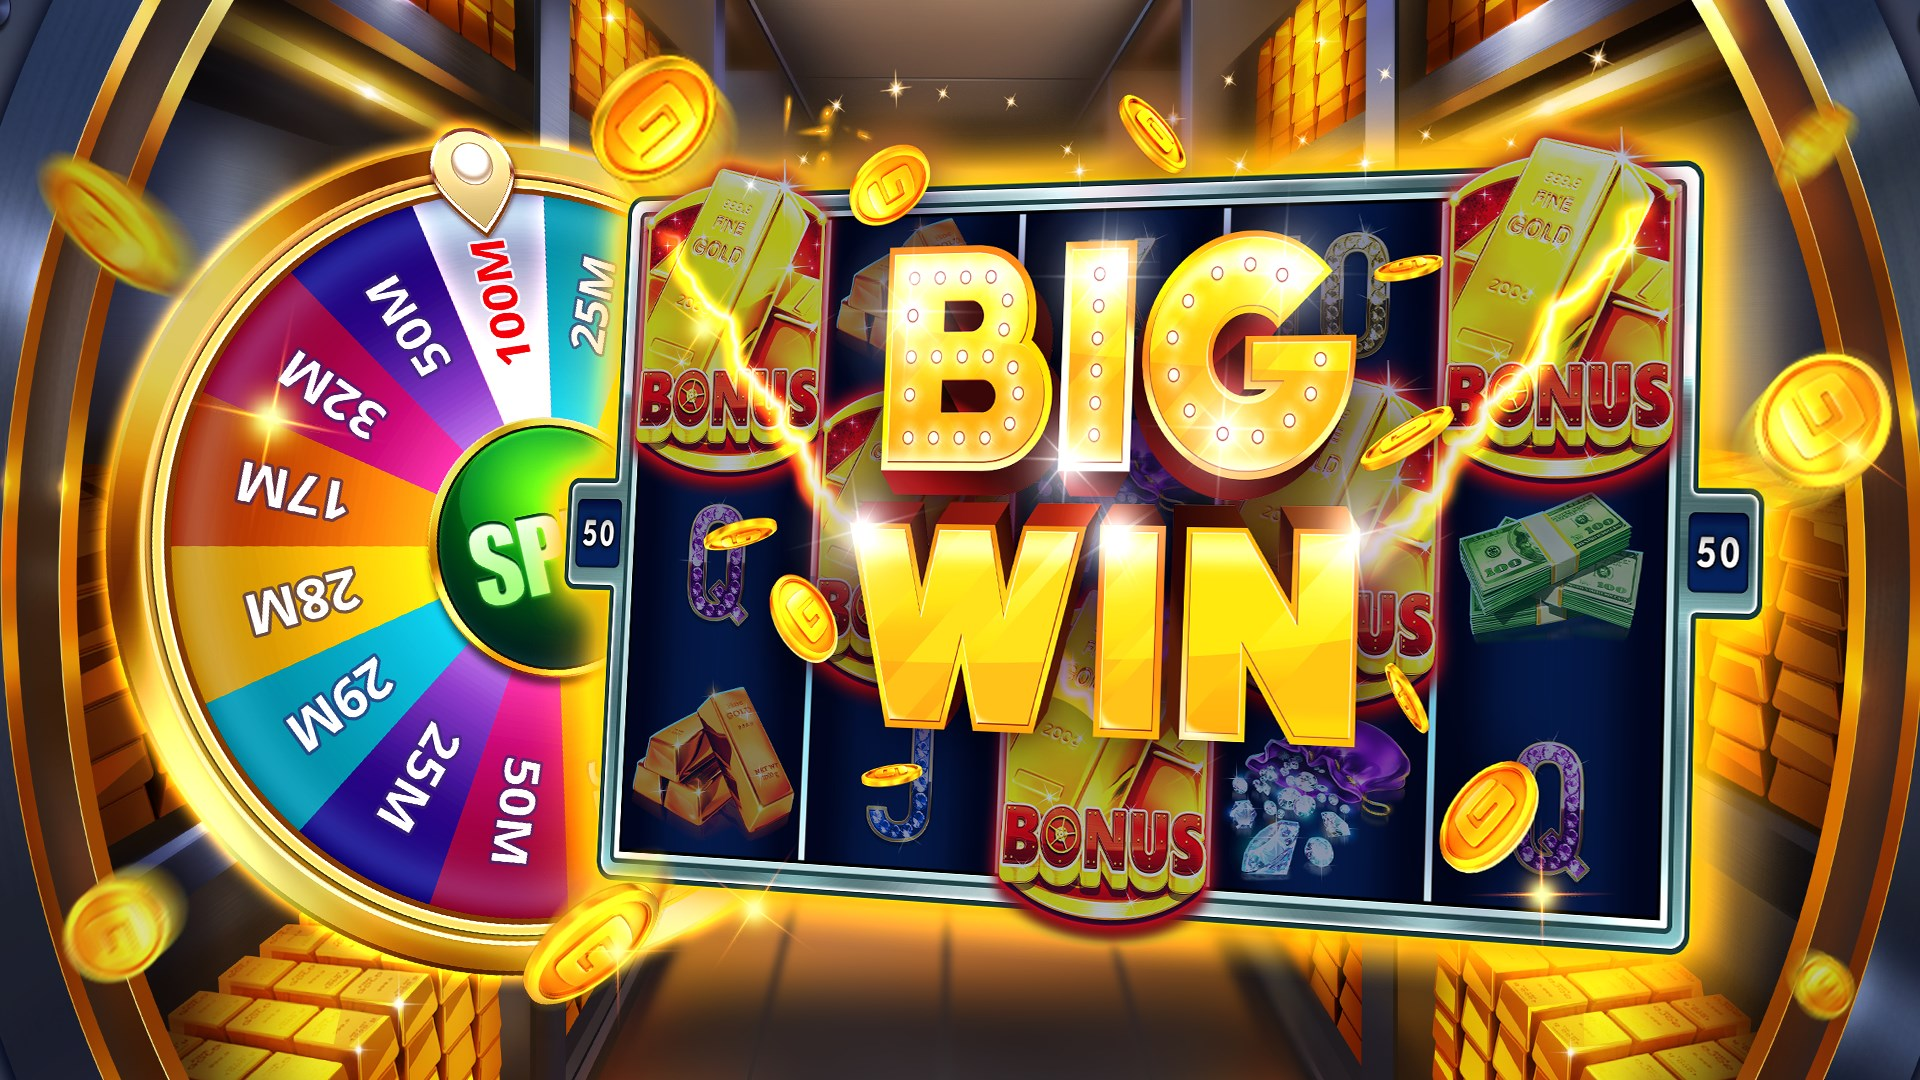 Cell phone casino games